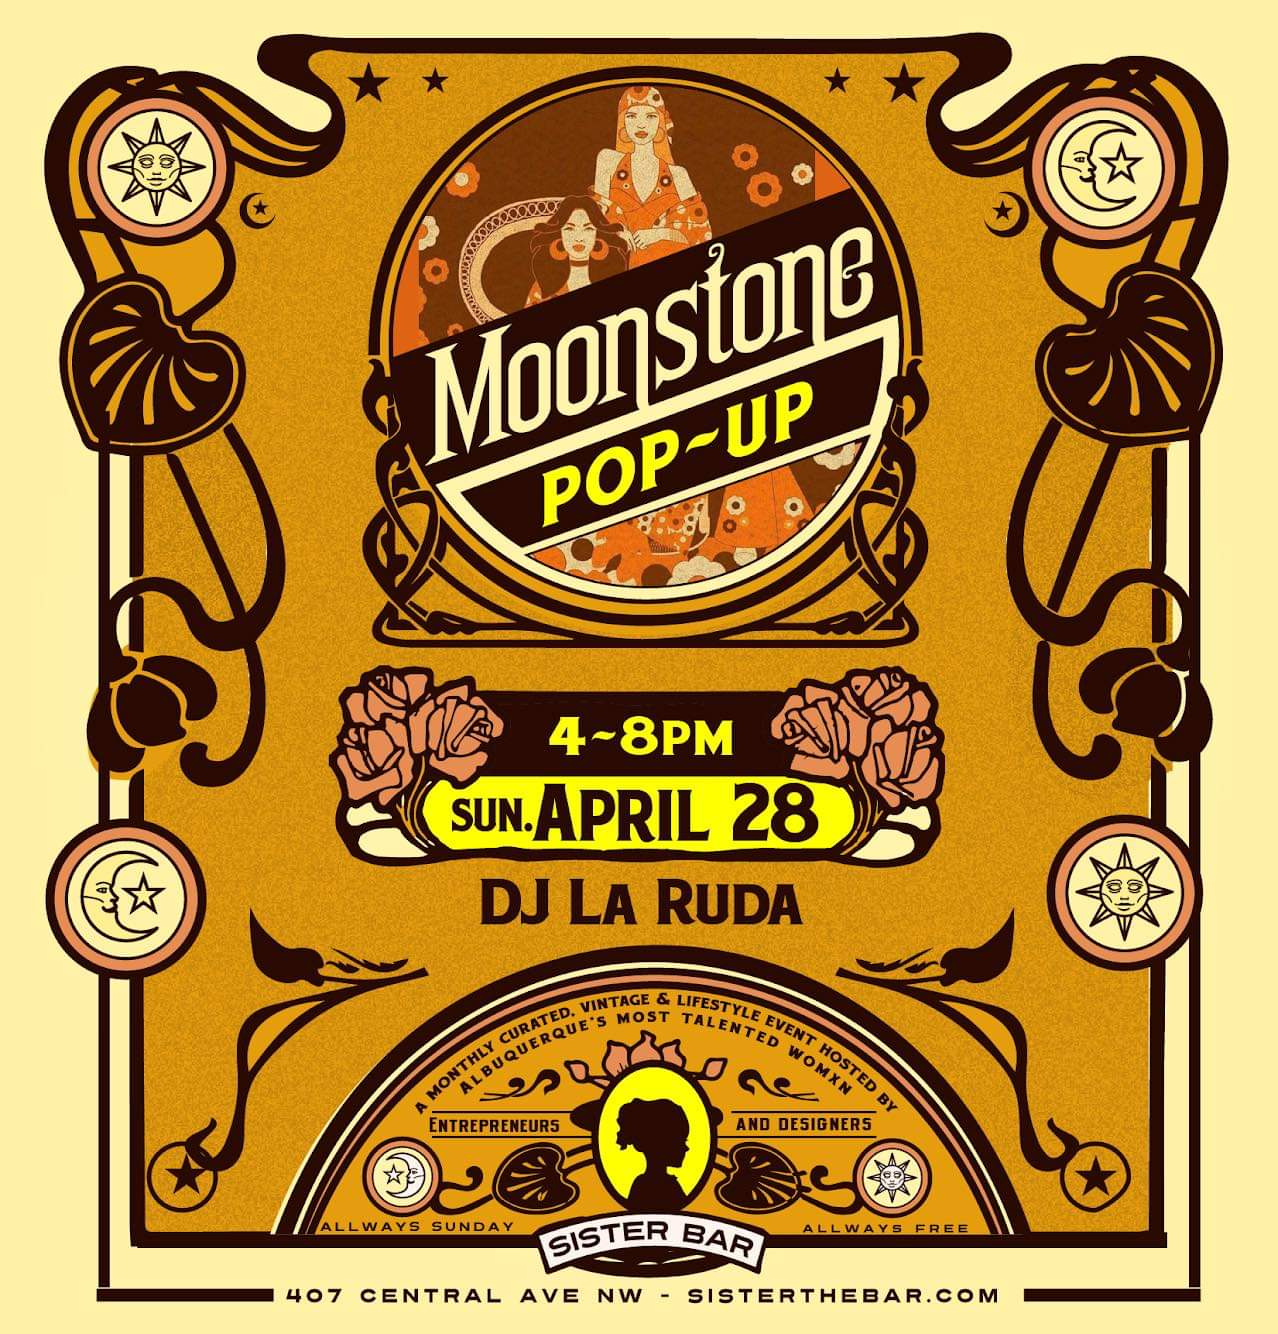 Moonstone Pop-Up